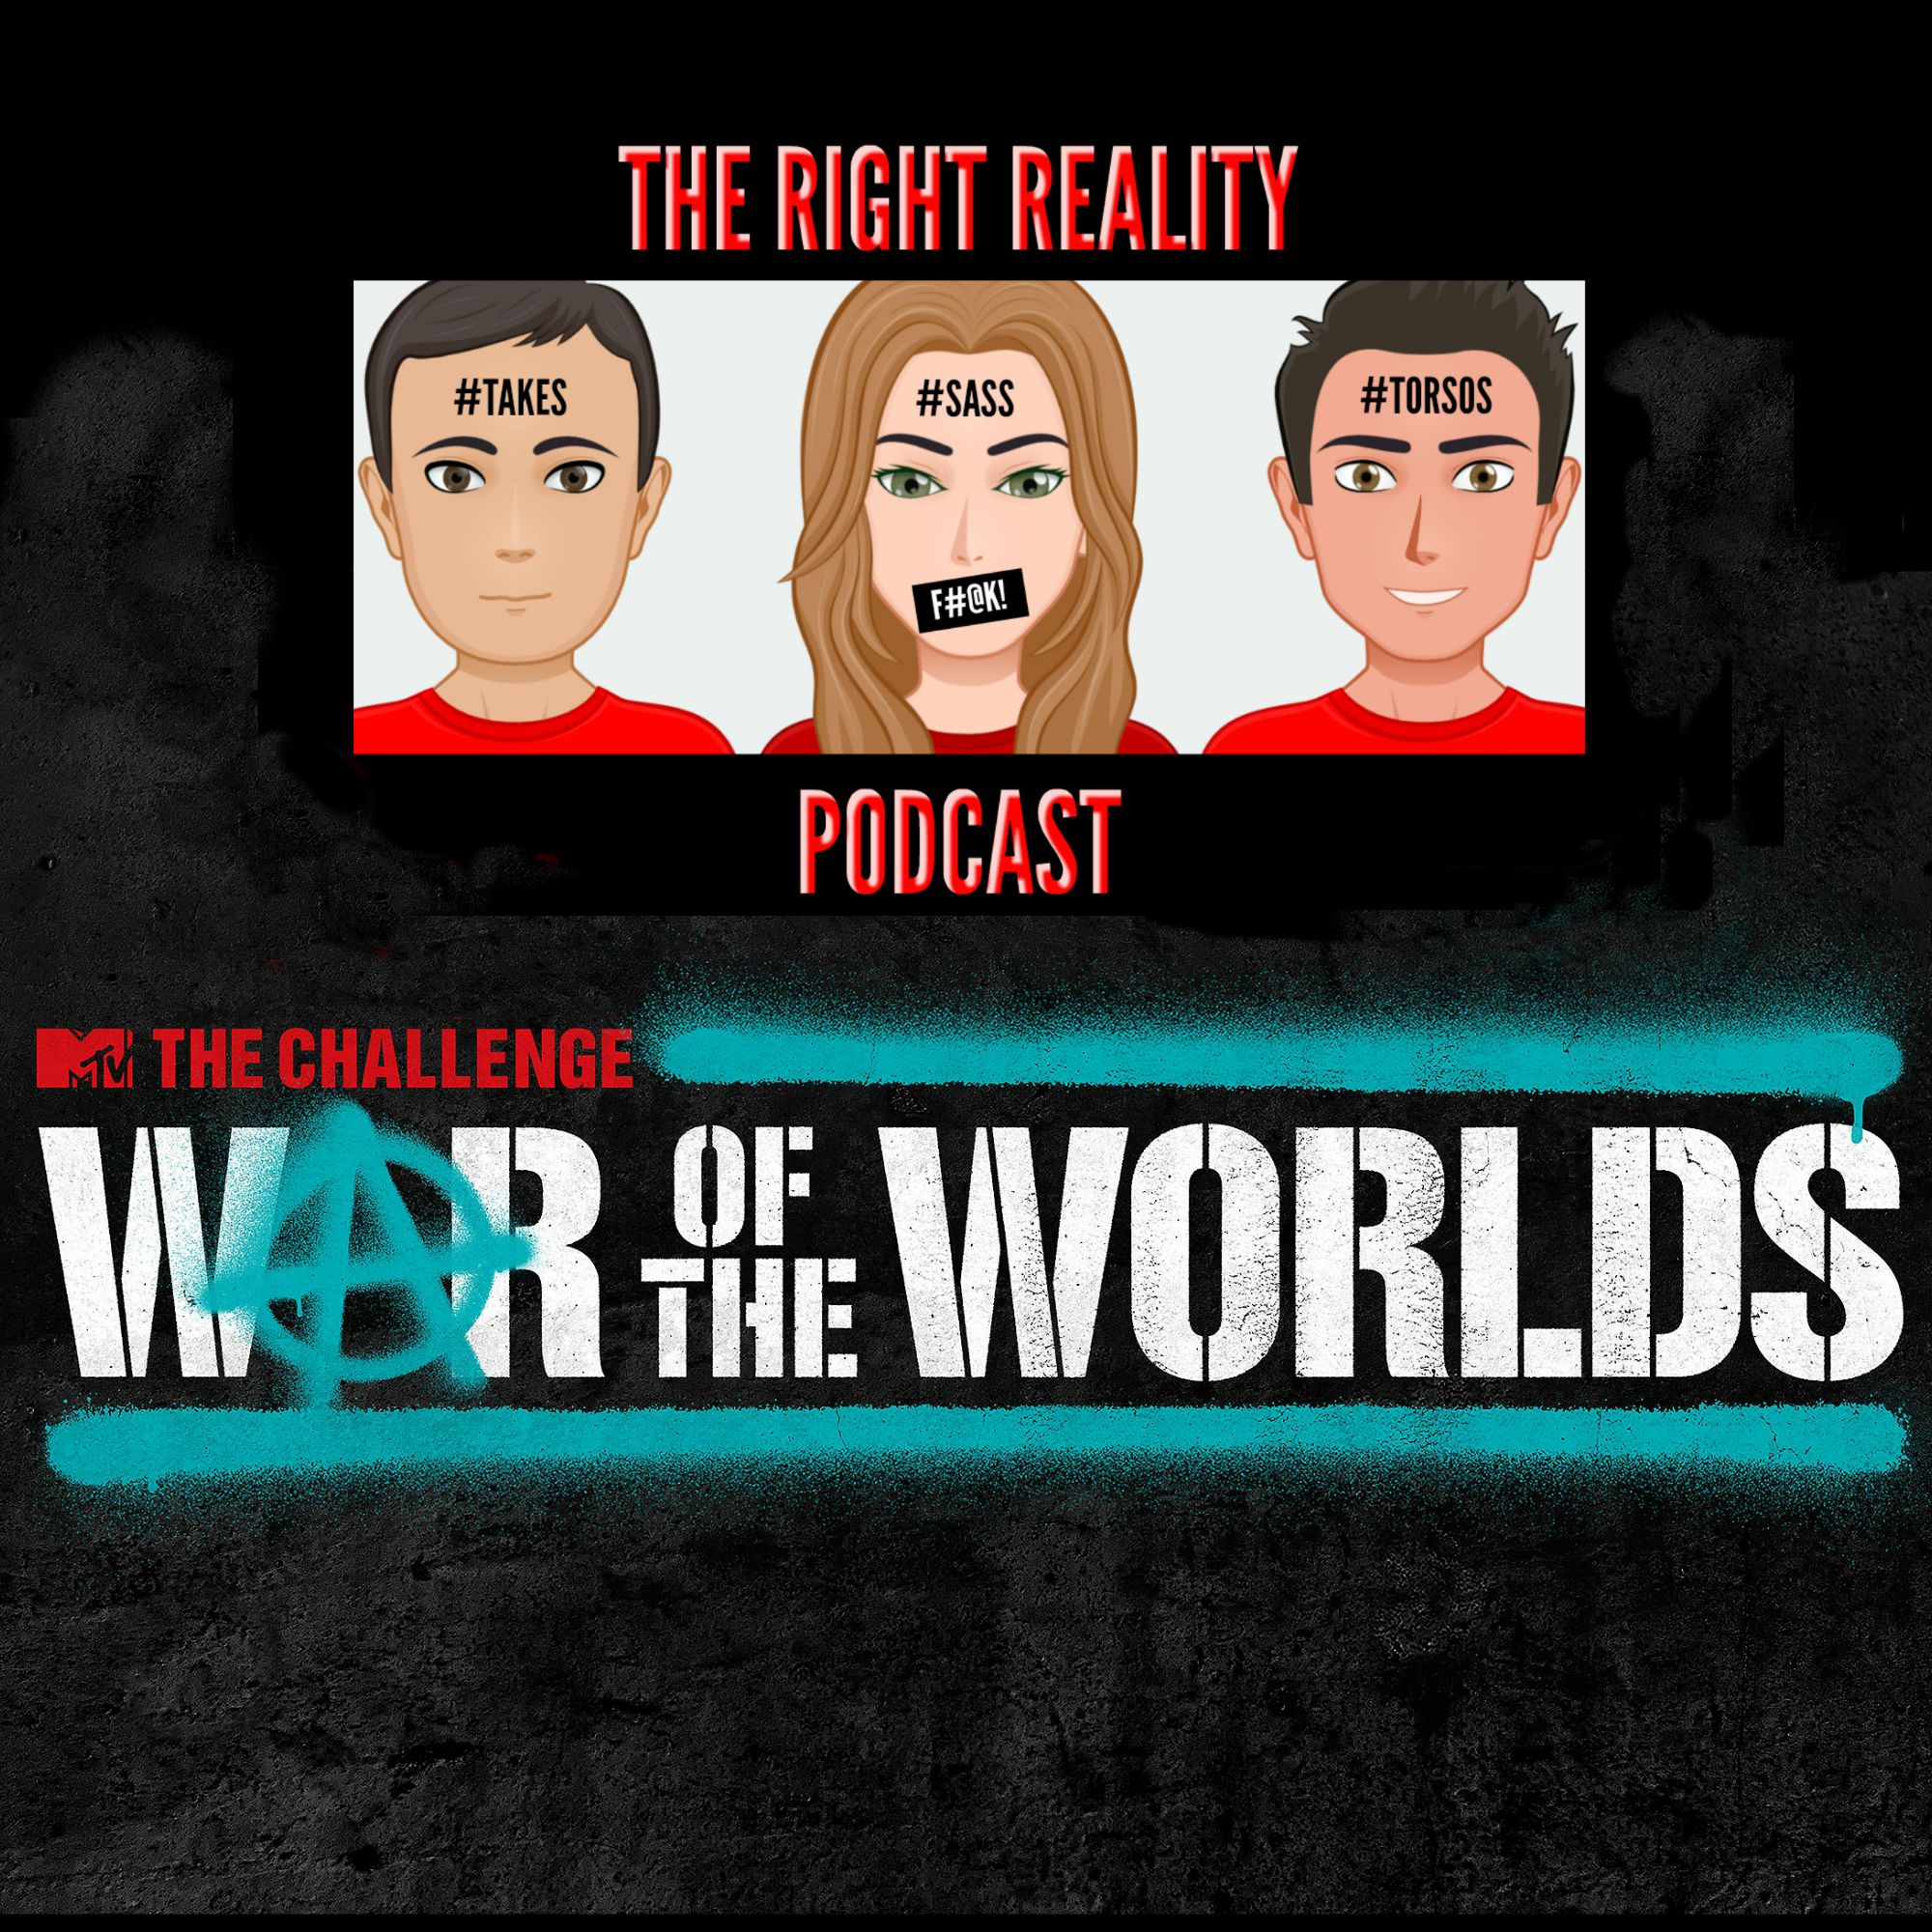 The Challenge- WOTW- The Waterboy - The Right Reality Podcast